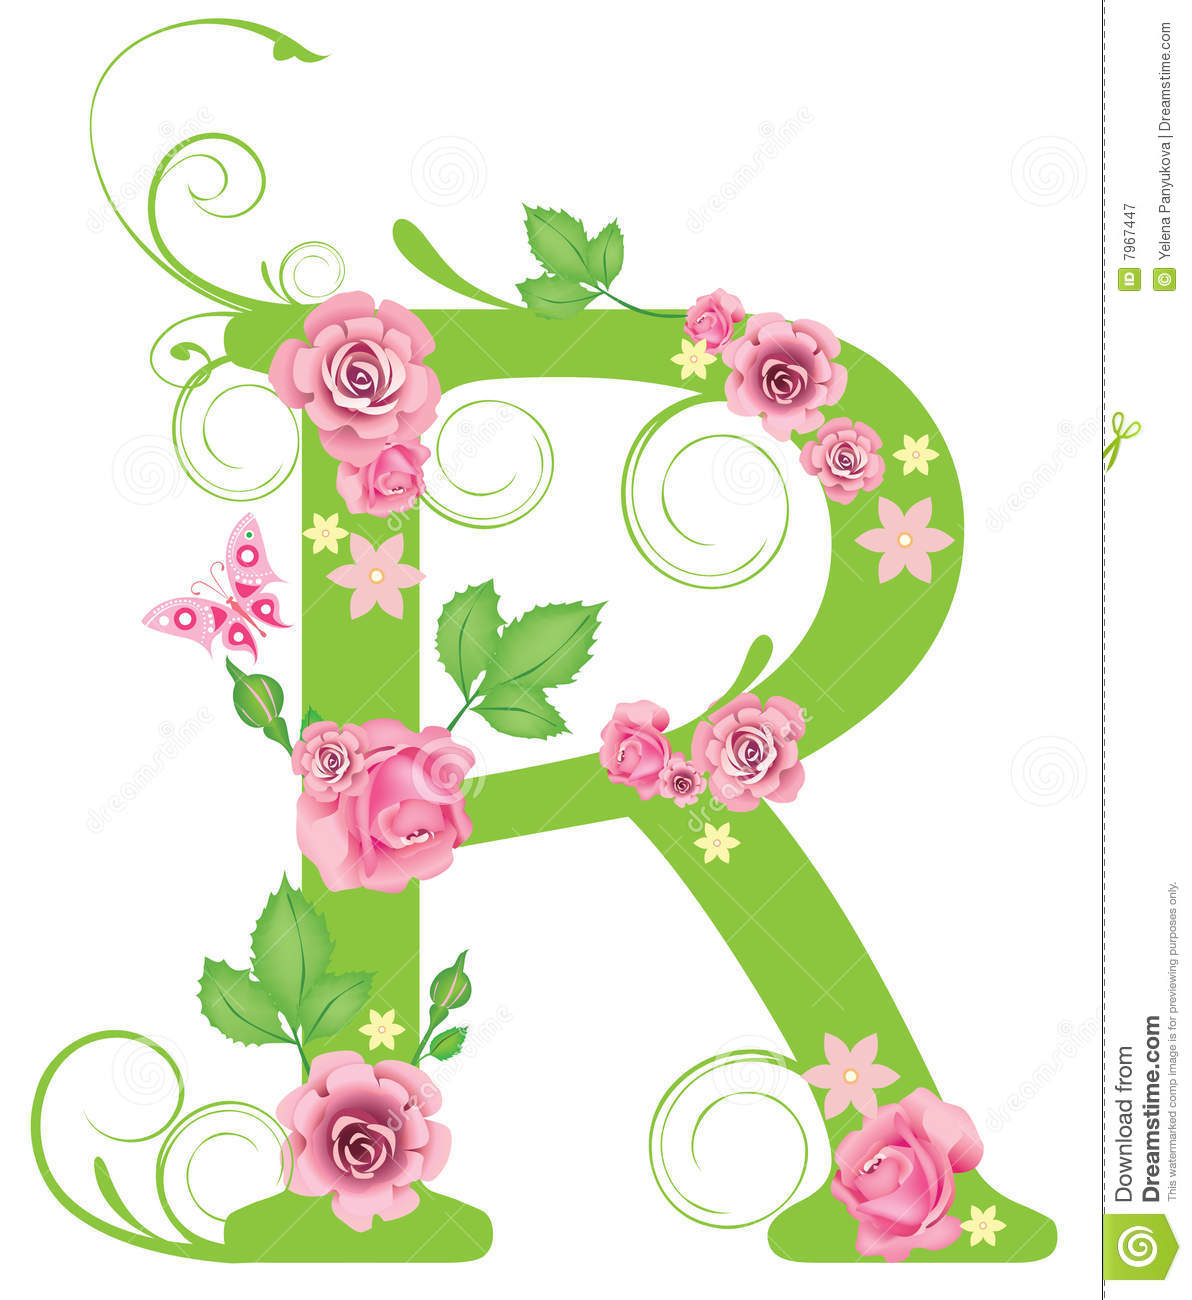 Letter r with roses stock vector illustration of swirl 7967447 download comp altavistaventures Image collections